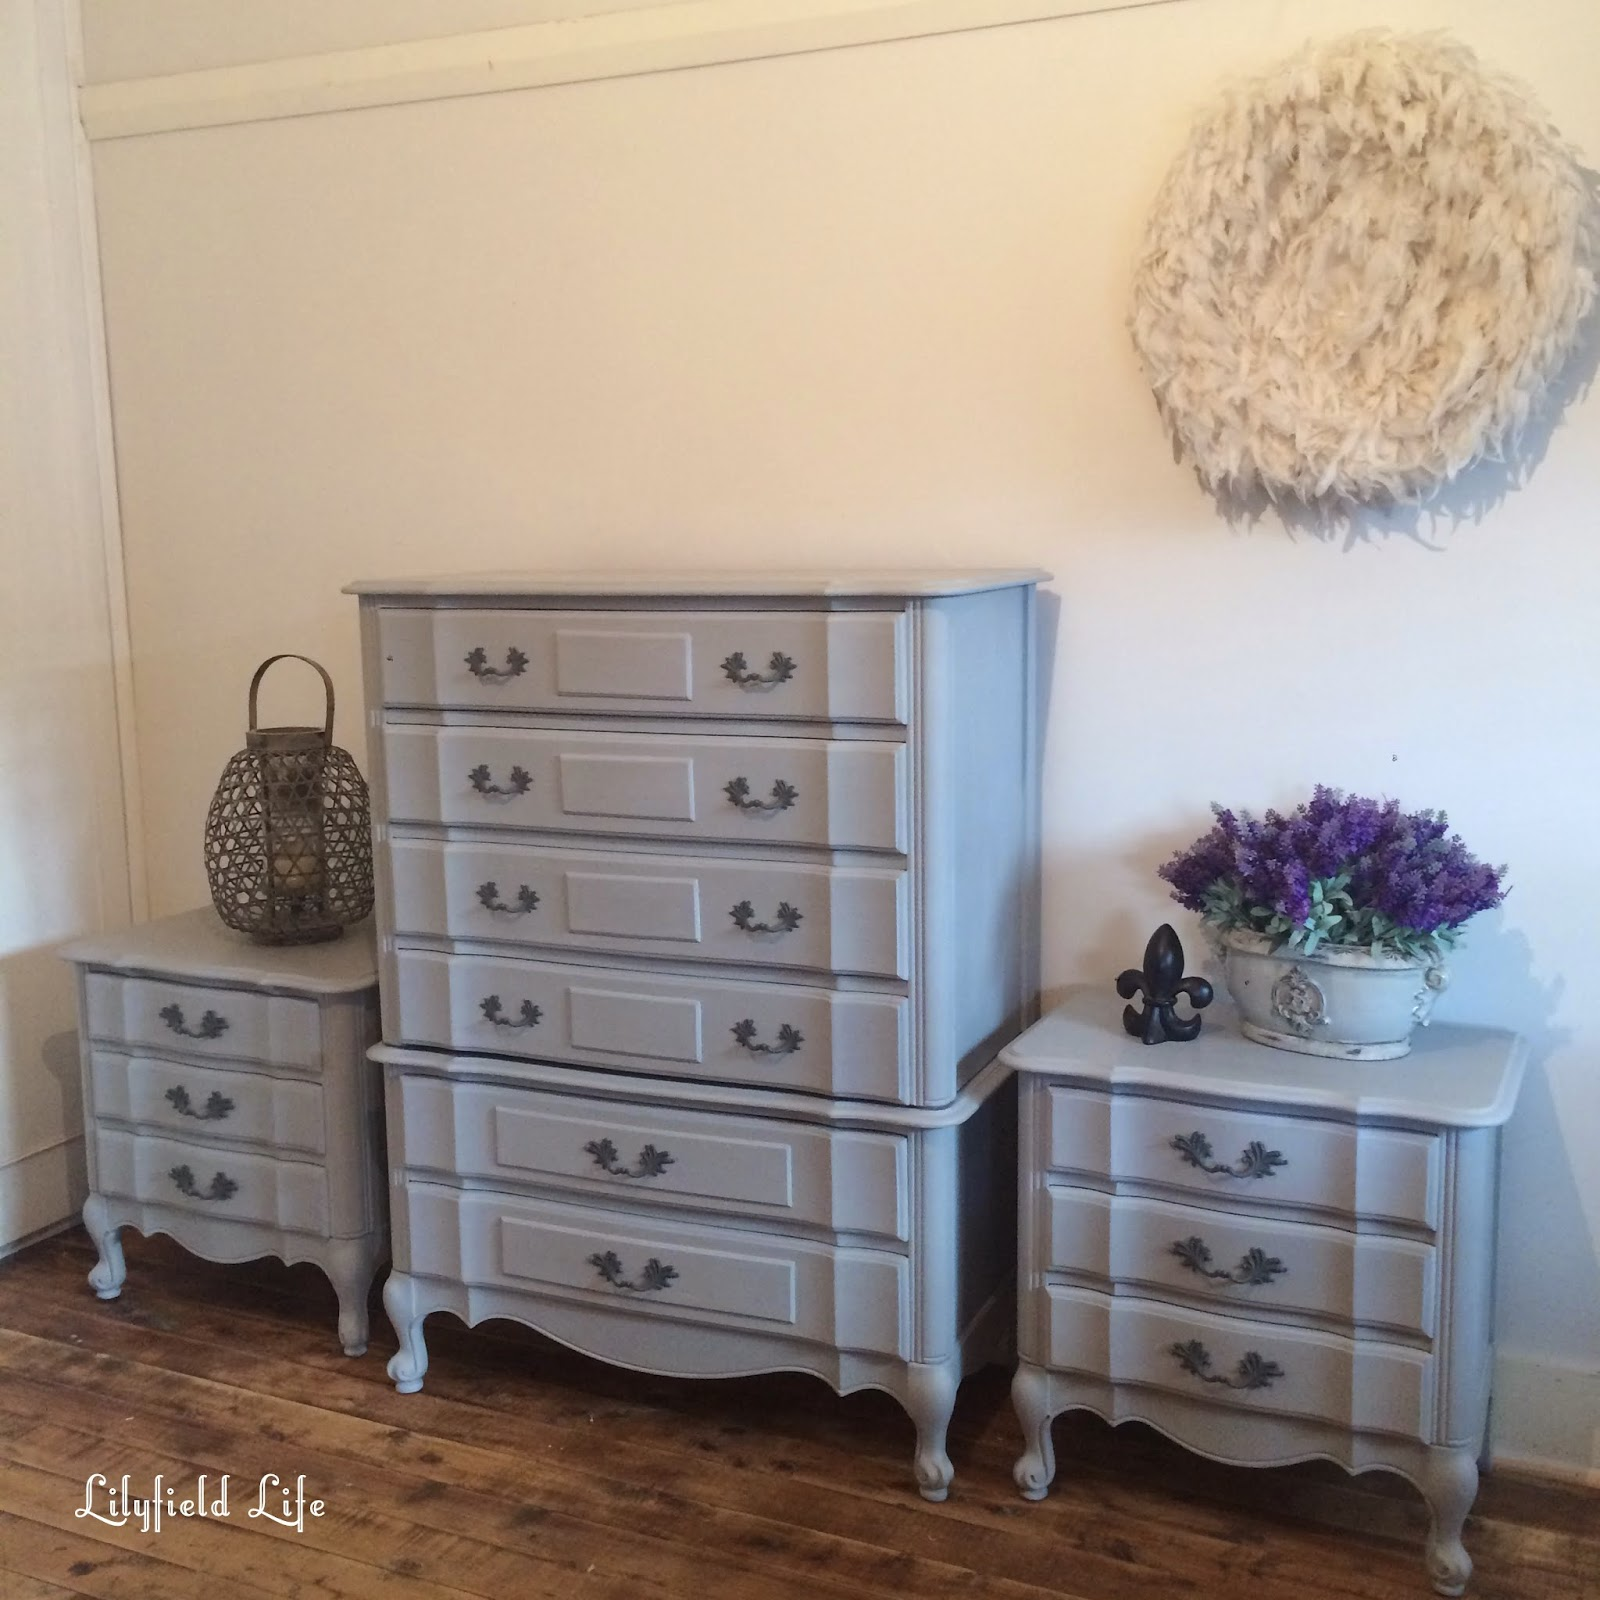 Lilyfield life ascp paris grey french style bedroom furniture for French style bedroom furniture